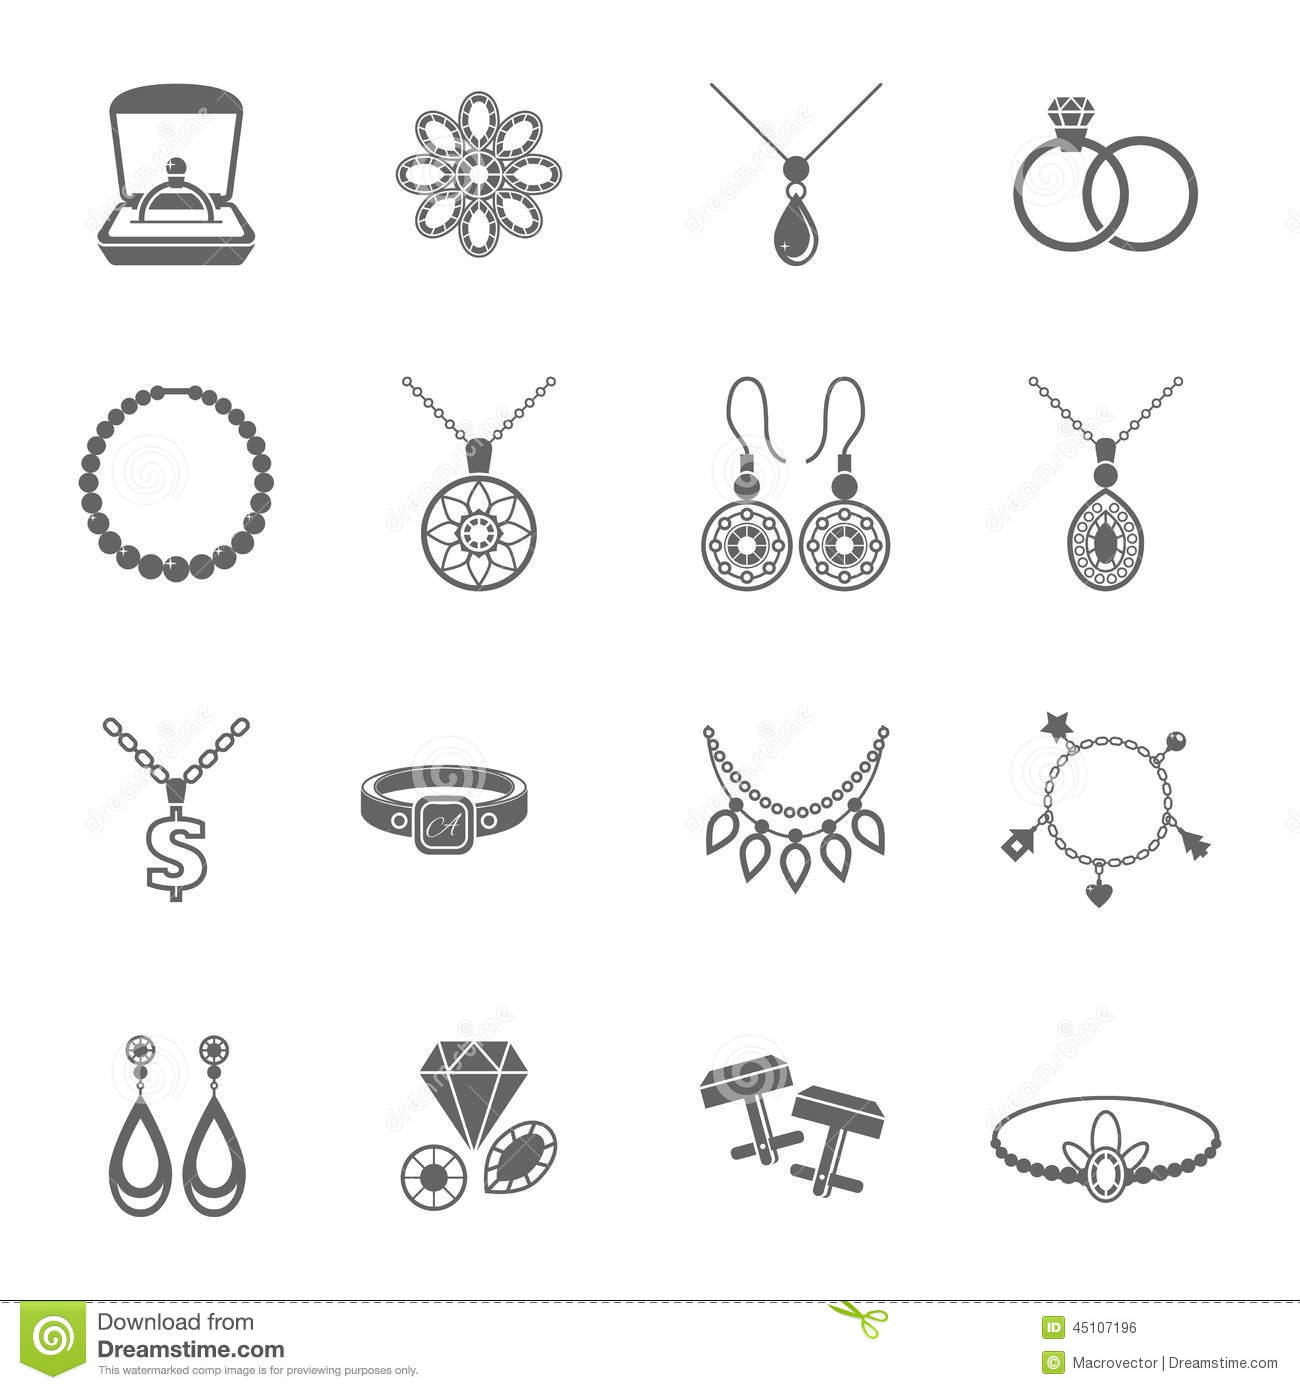 Stock Illustration Jewelry Icon Black Icons Set Luxury Jewels Precious Gifts Isolated Vector Illustration Image45107196 likewise P besides Cad Jewellery Software Rhino 3d further P in addition 1537 G1I6u1bv1VQqL1MrknjRVq4J58Ge3. on gem sketch